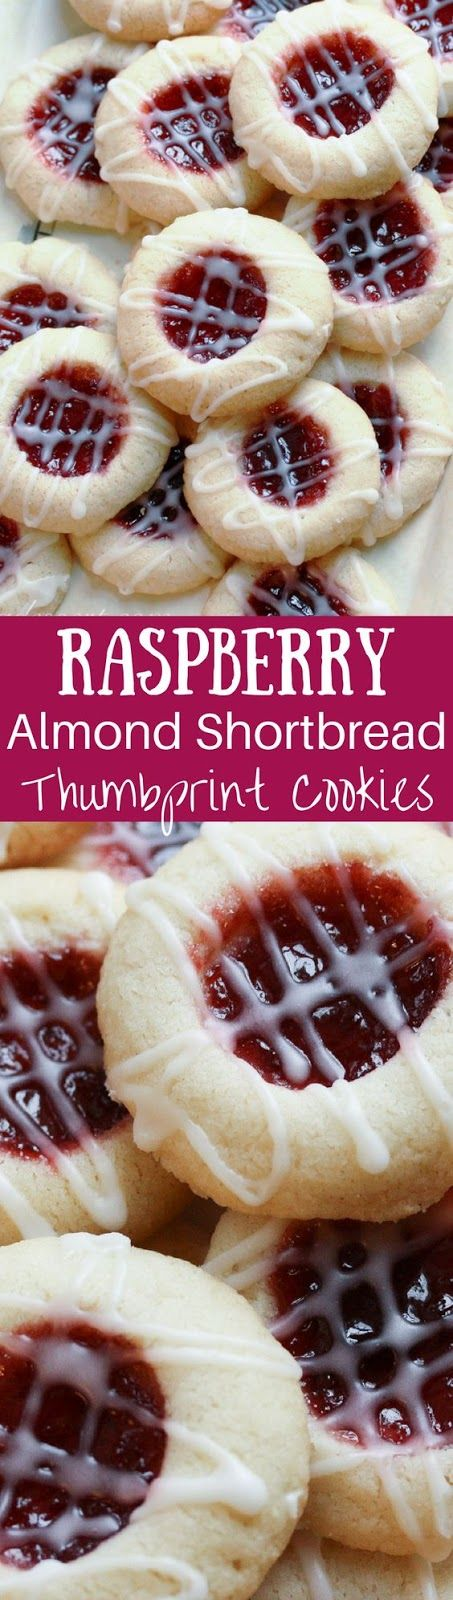 I love thumbprint cookies! This is the one recipe that I simply have not managed to get right in a gluten free version. I've probably trie...